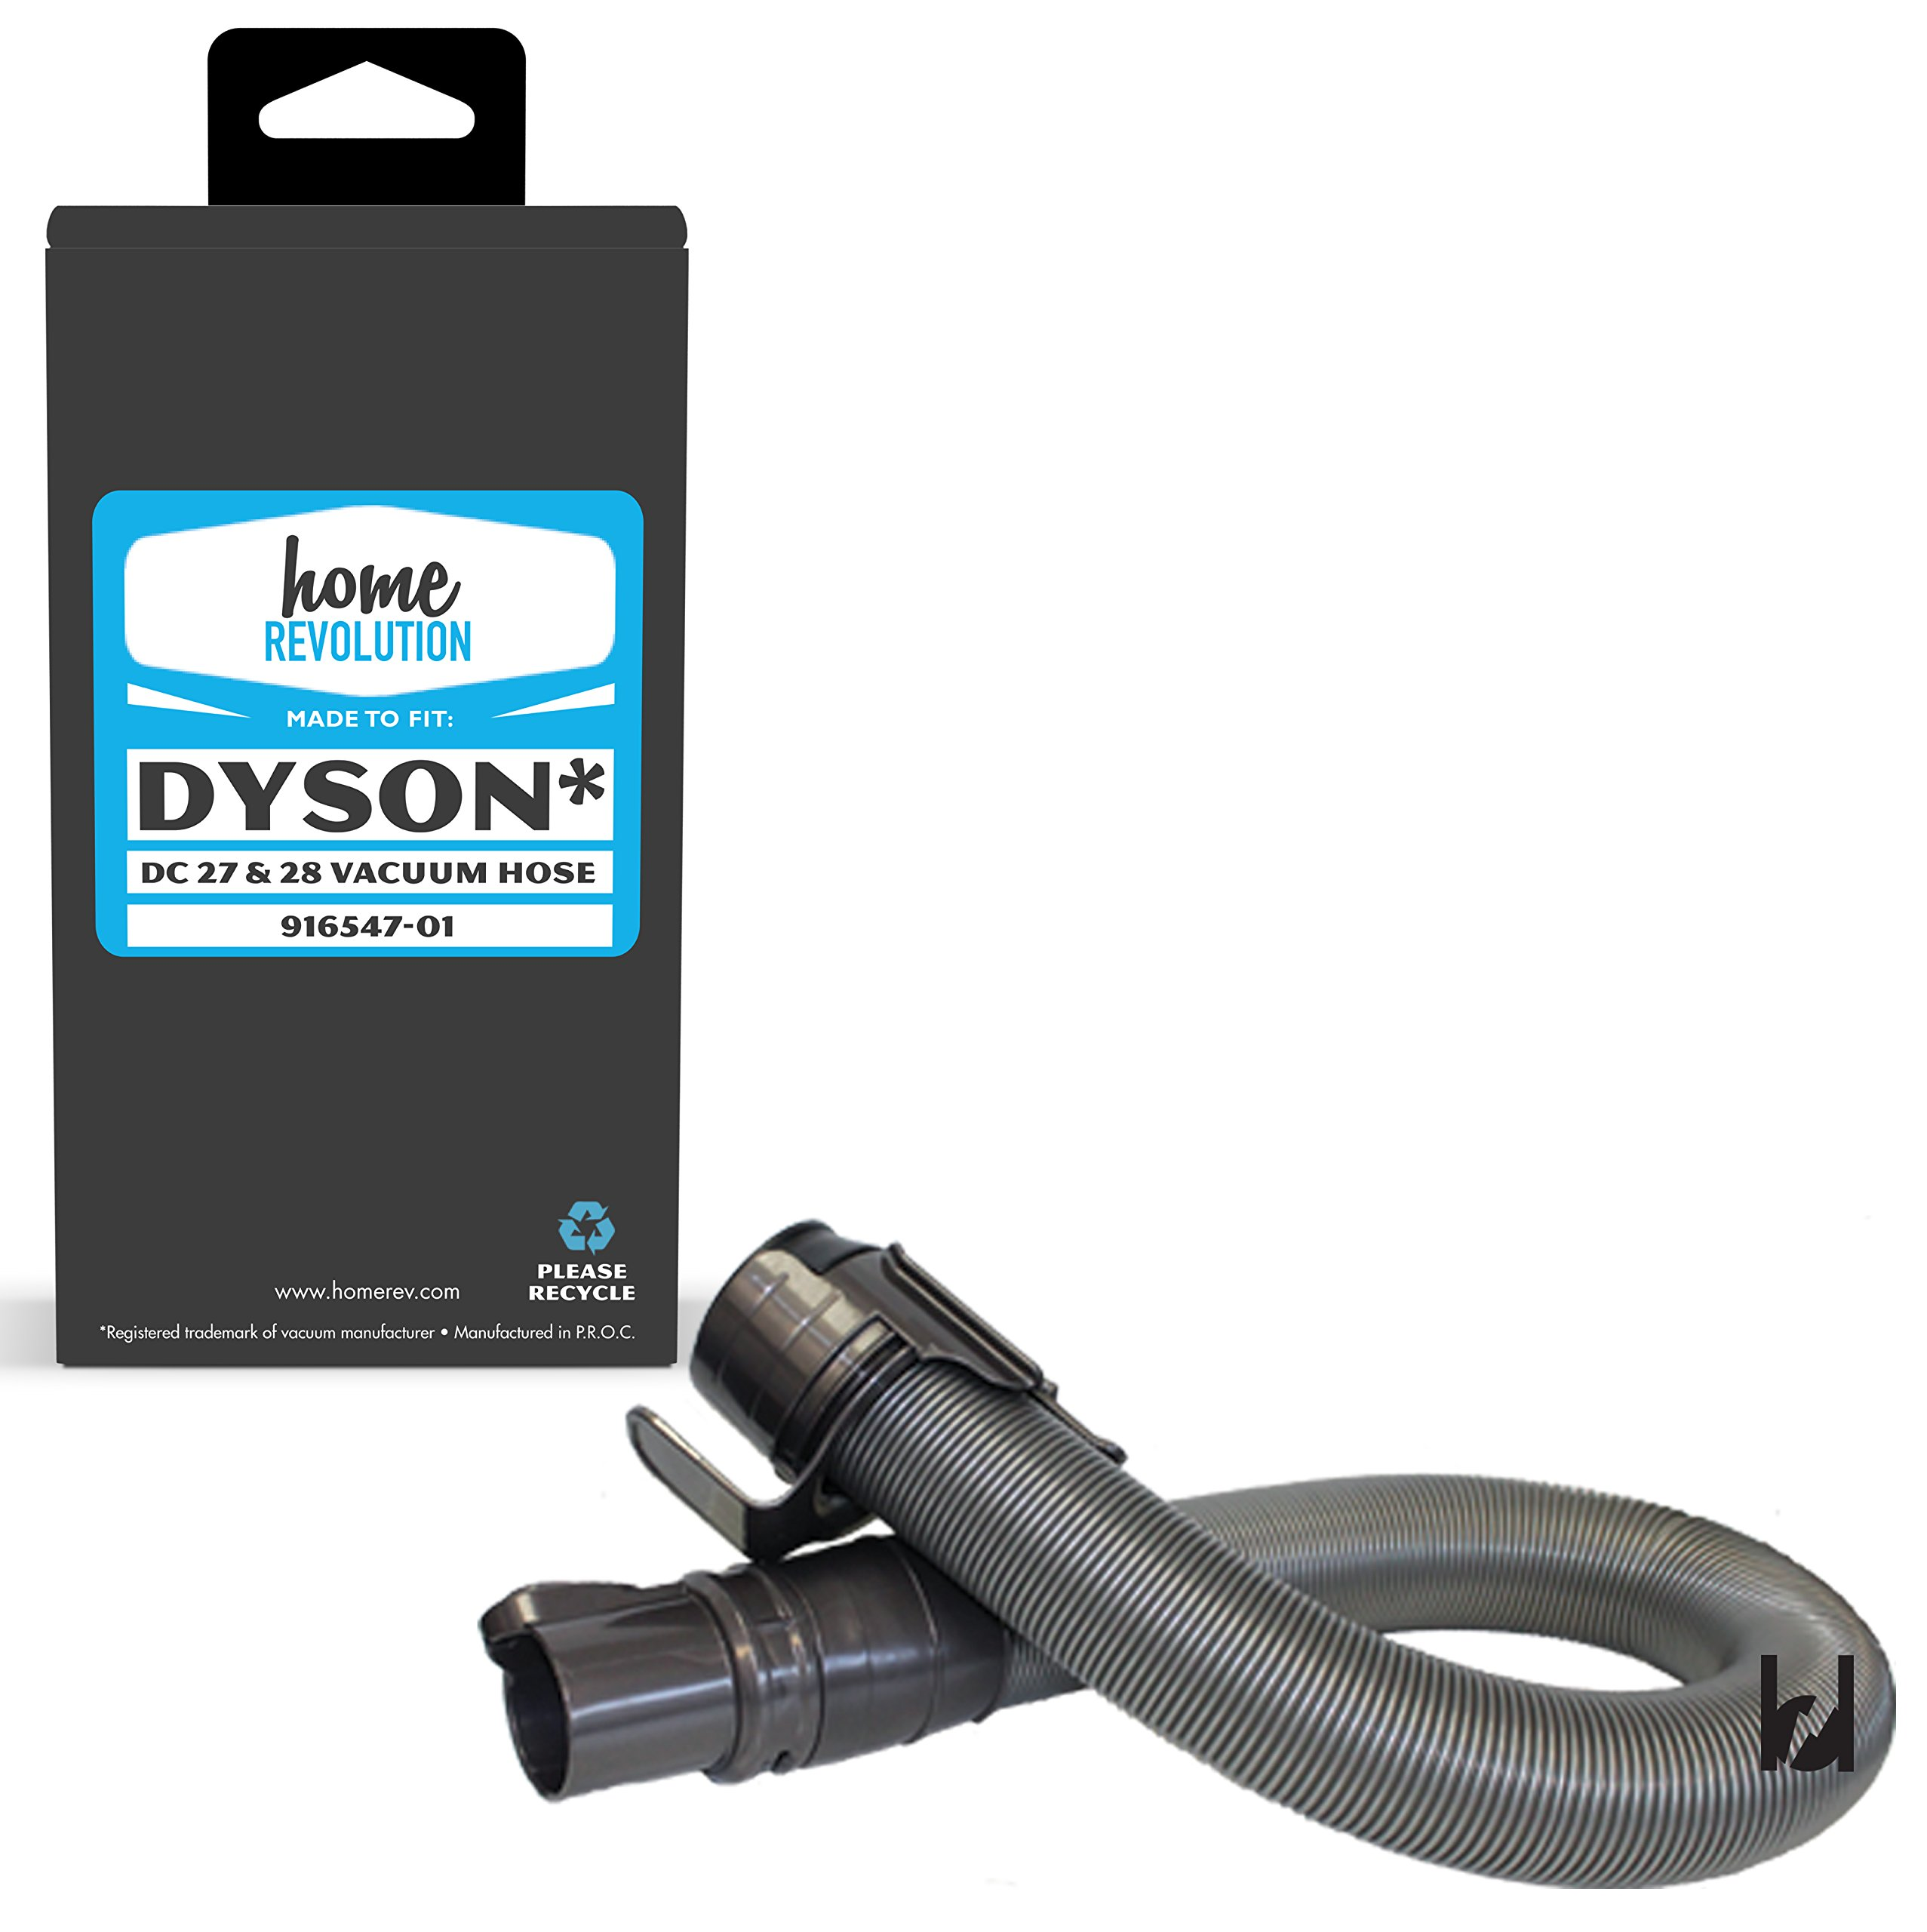 Home Revolution Replacement Vacuum Hose, Fits Dyson DC27 All Floor Upright, Total Clean, DC28 Animal Airmuscle, Animal Bagless Vacuums and Part 916547-01 and 916547-02